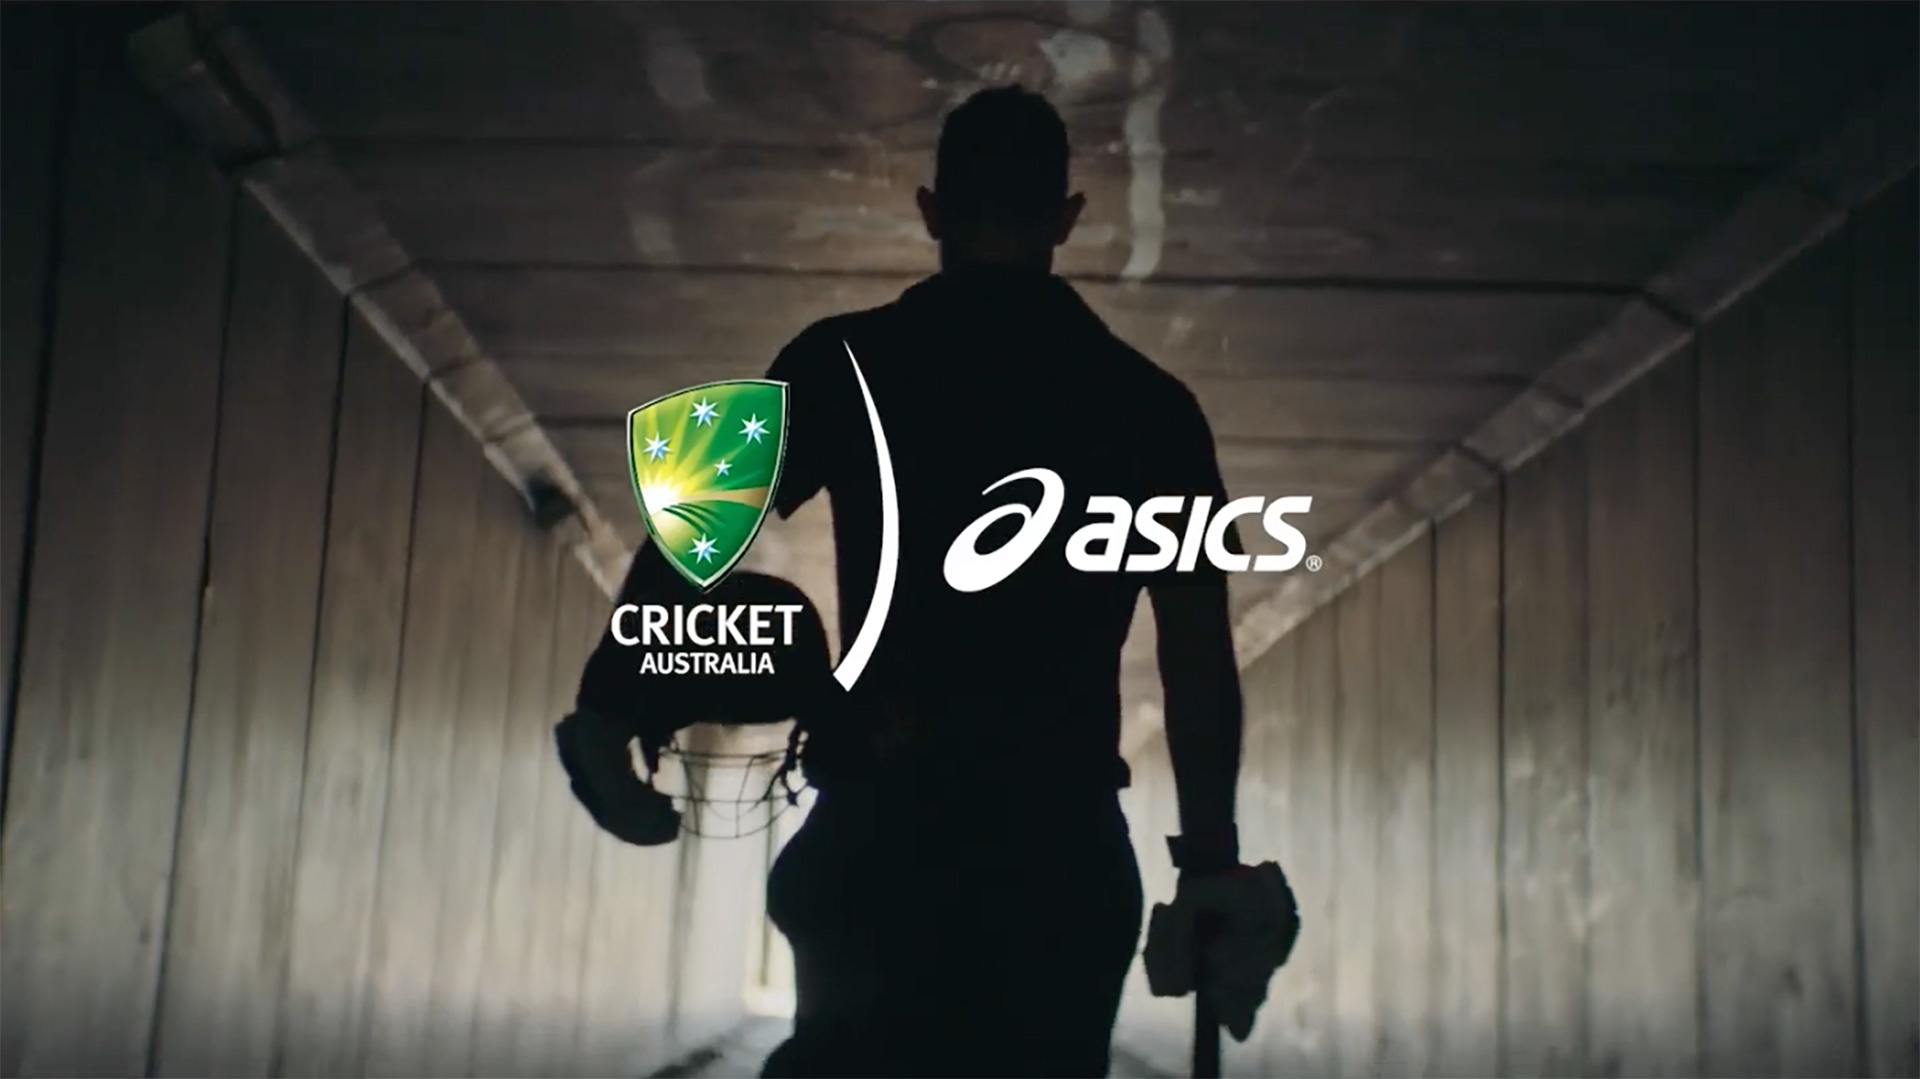 ASICS_Cricket_Video_static_desktop_1920x1080